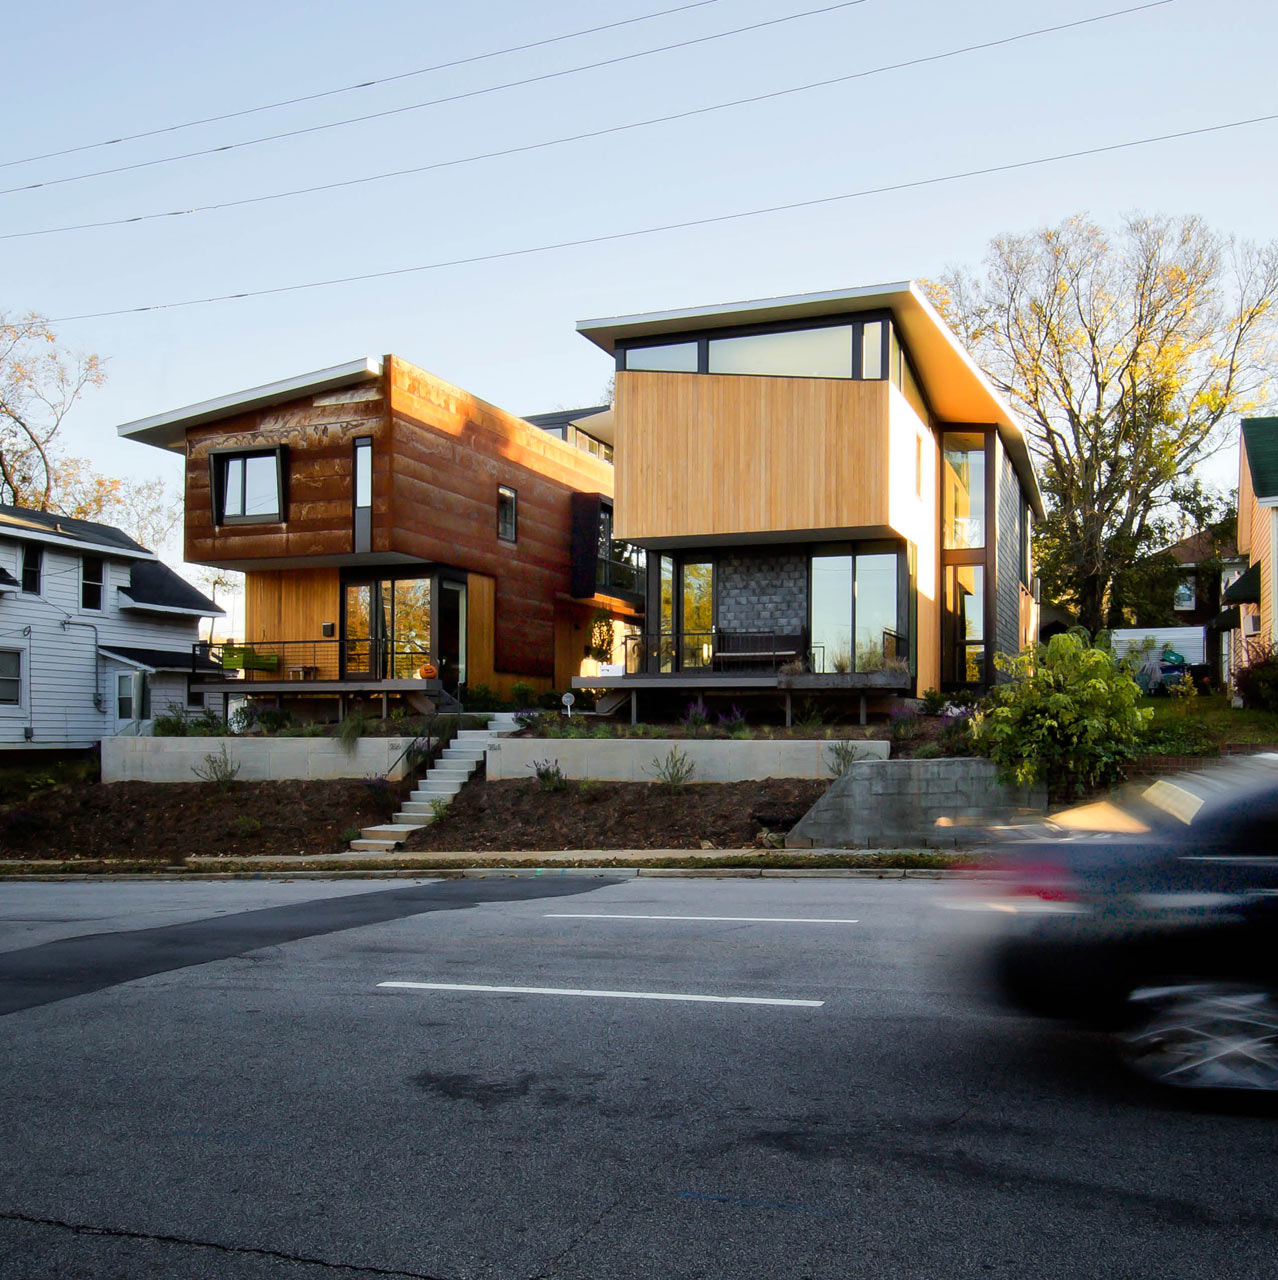 Raleigh Architecture Company Wins Award For Urban Infill